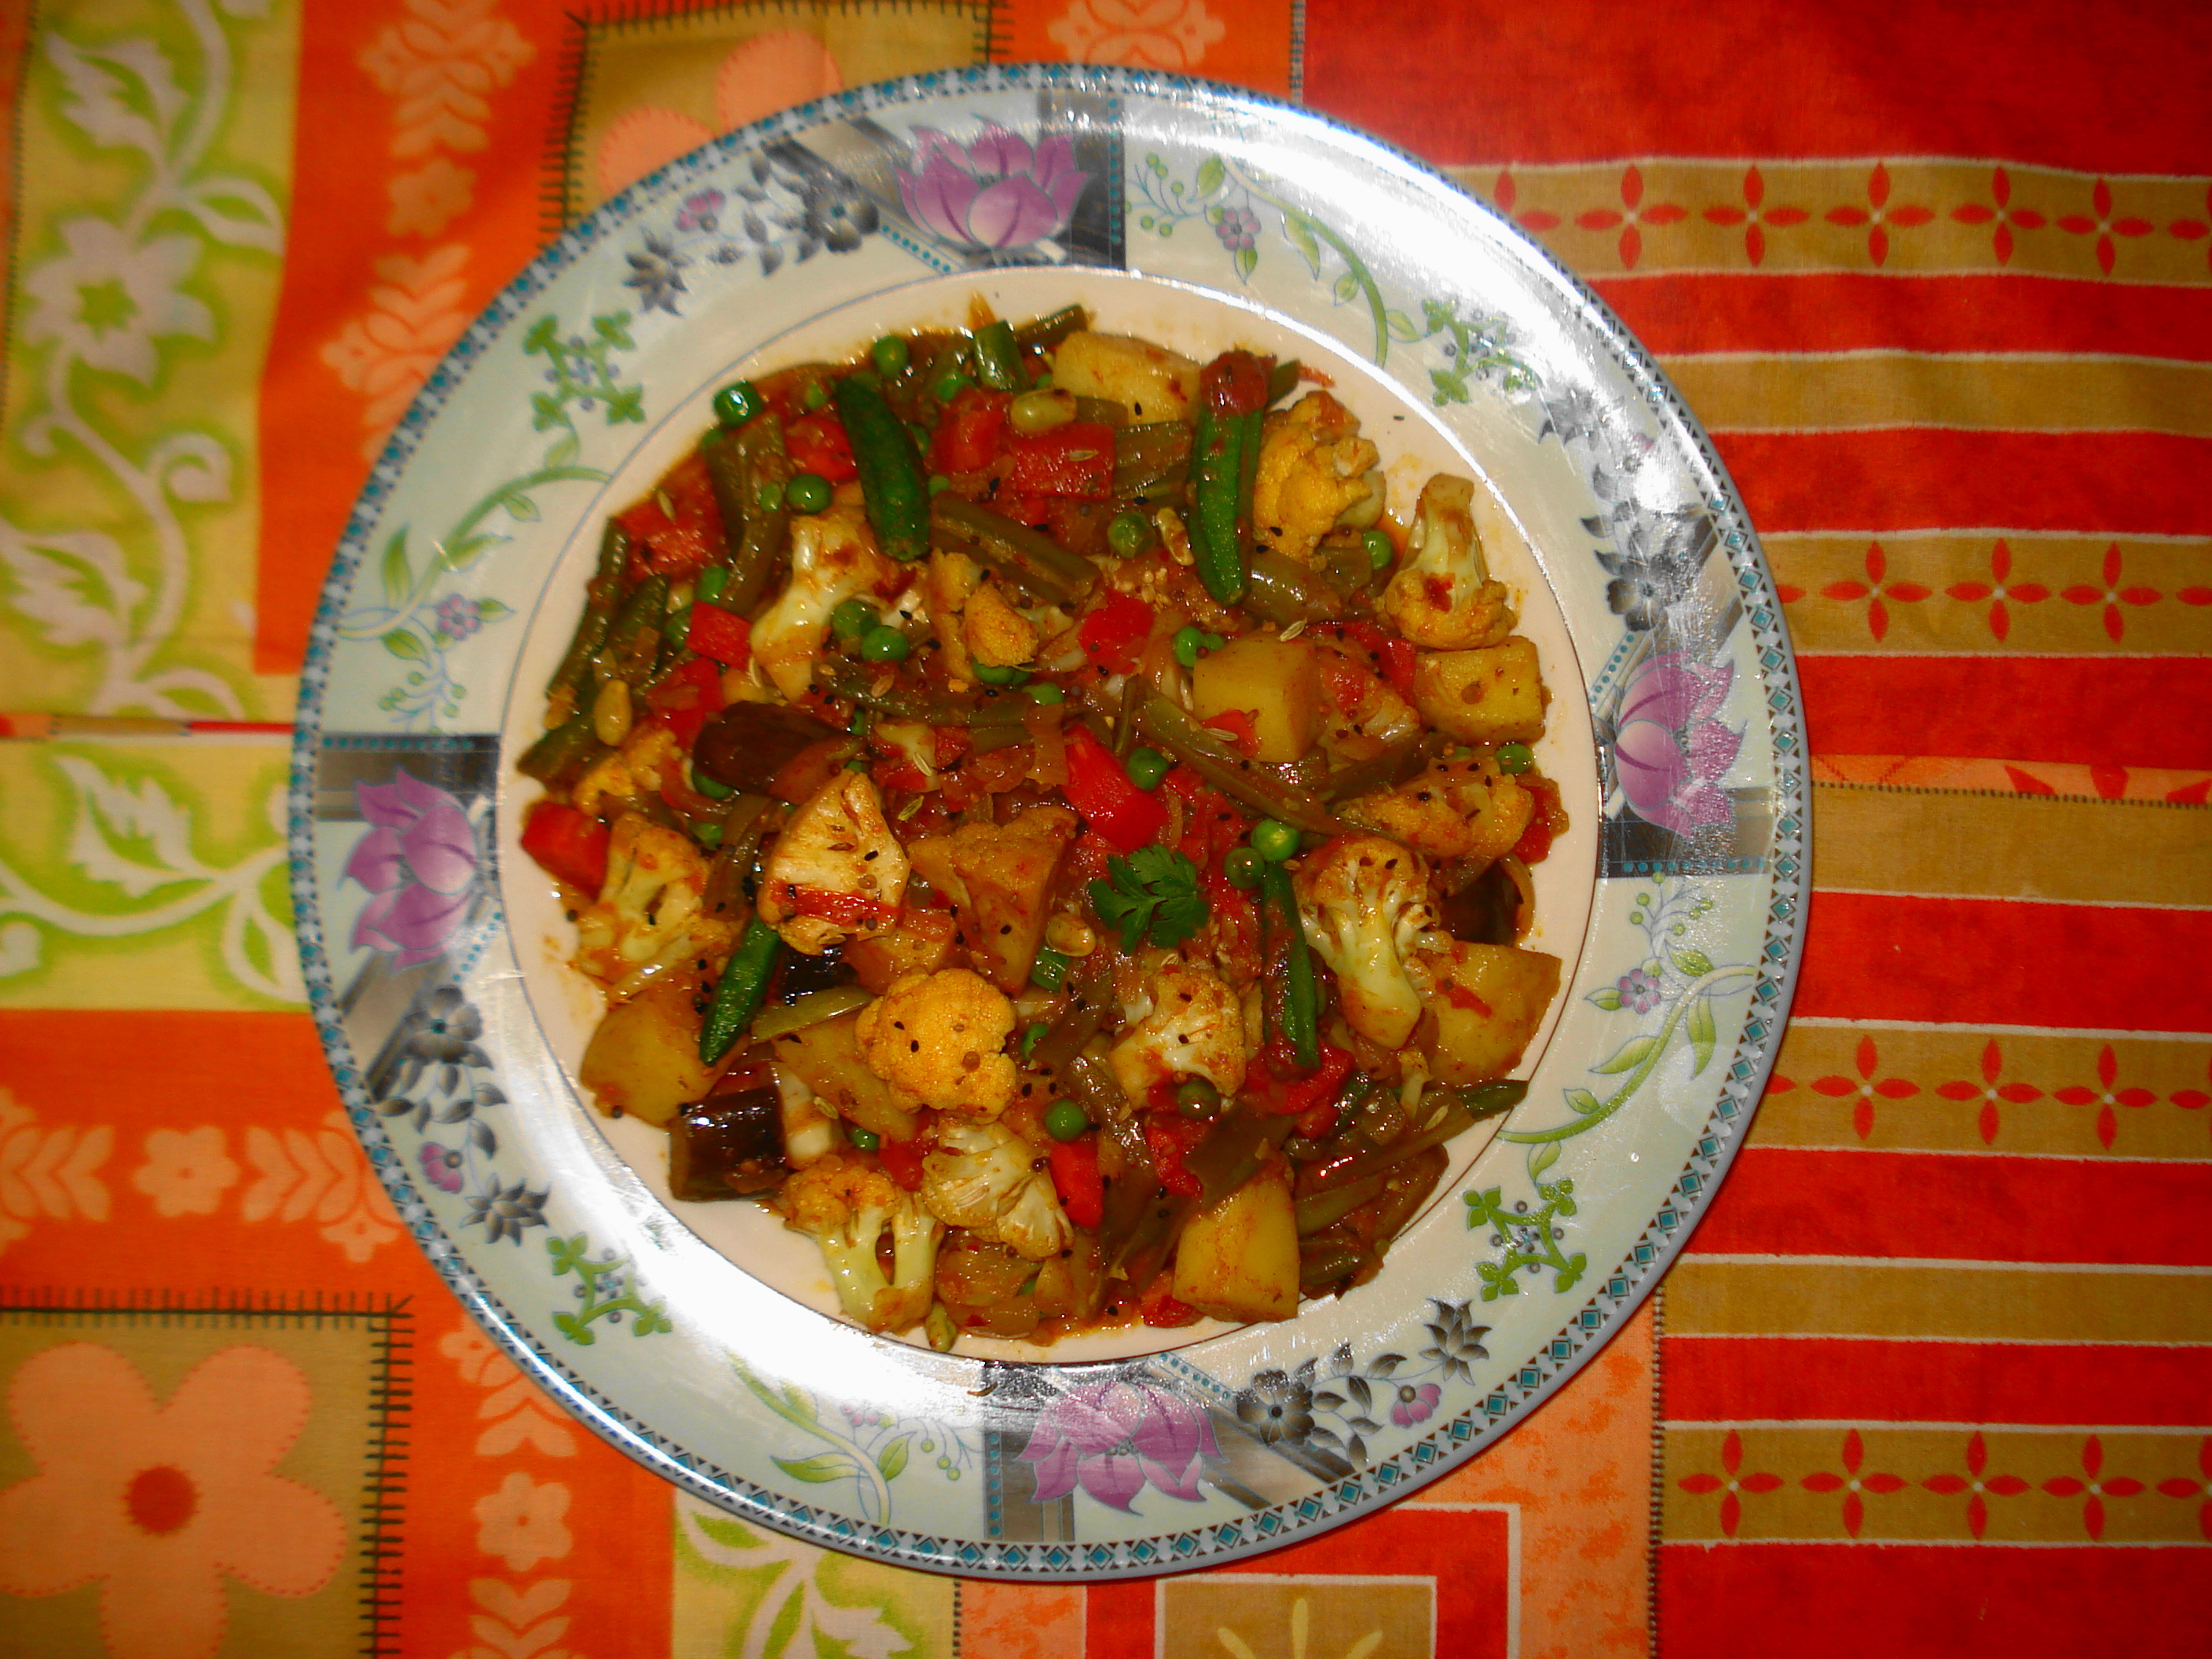 File:South Indian Mixed Vegetable Curry.JPG - Wikimedia Commons